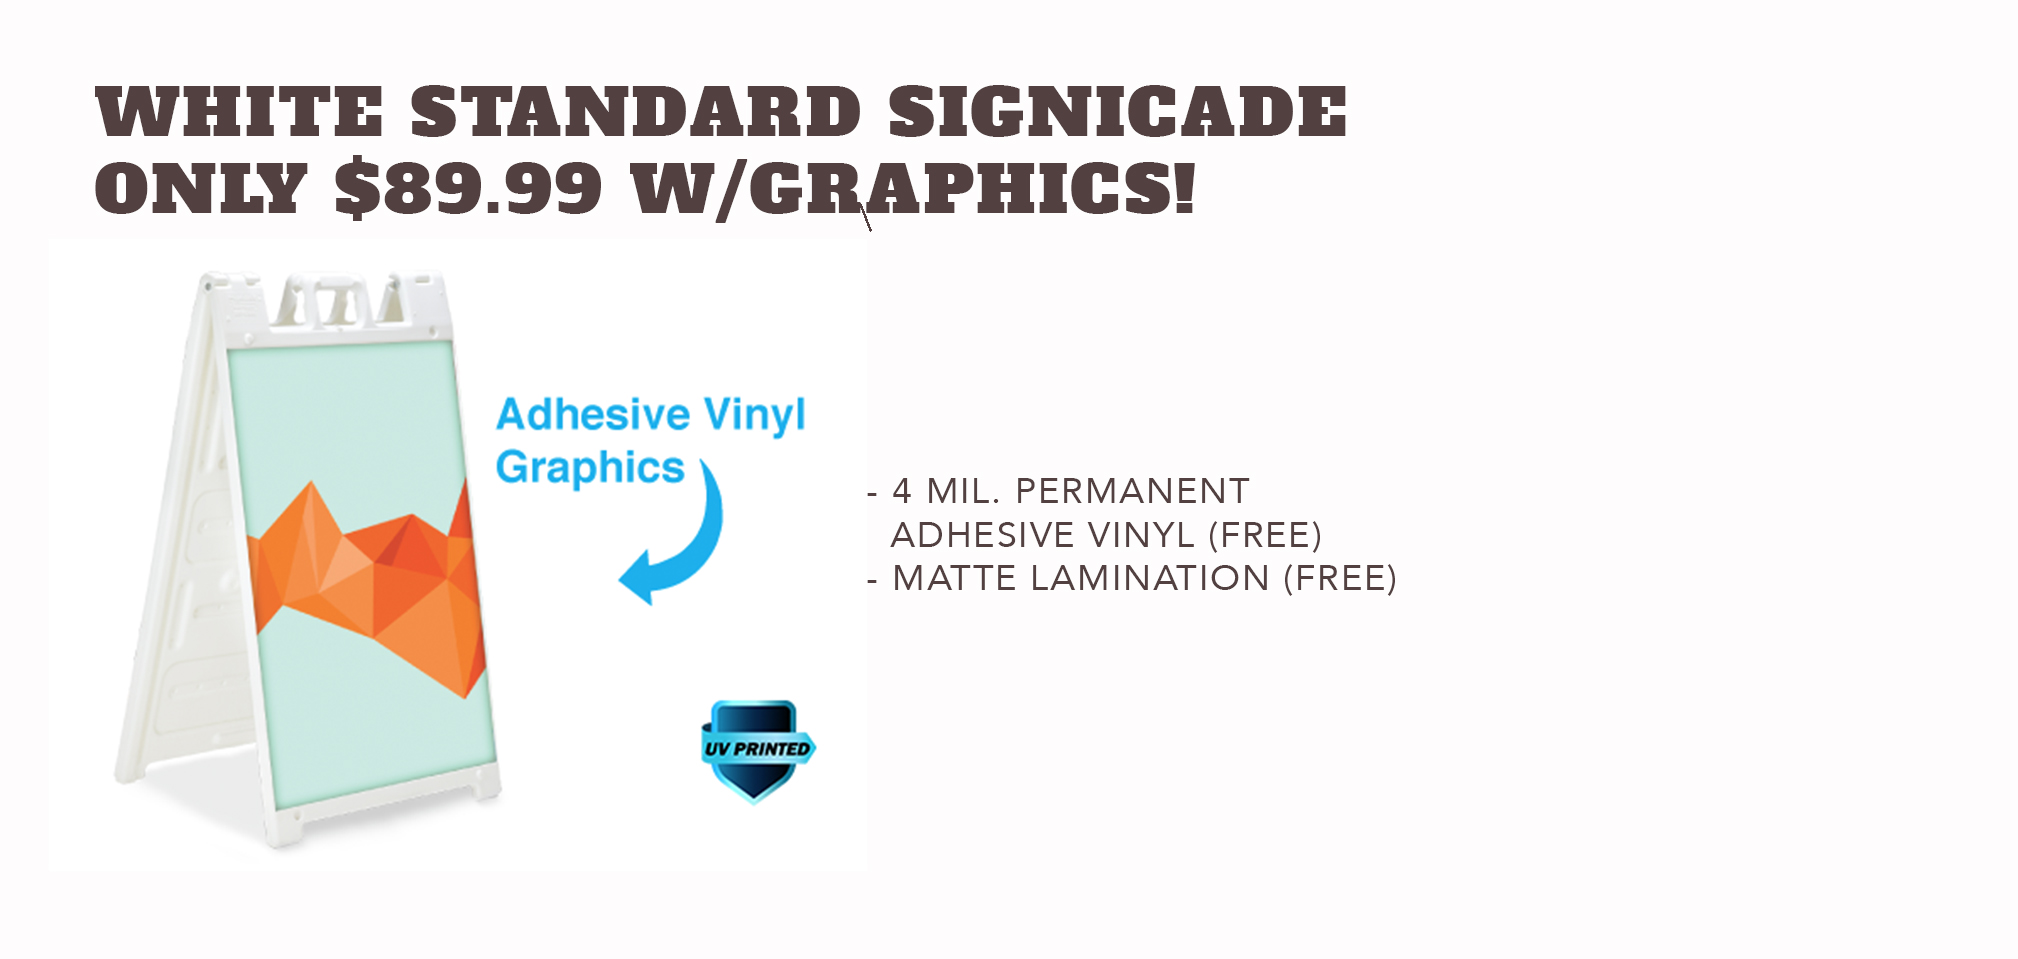 White StandardSignicade - Only $89.99